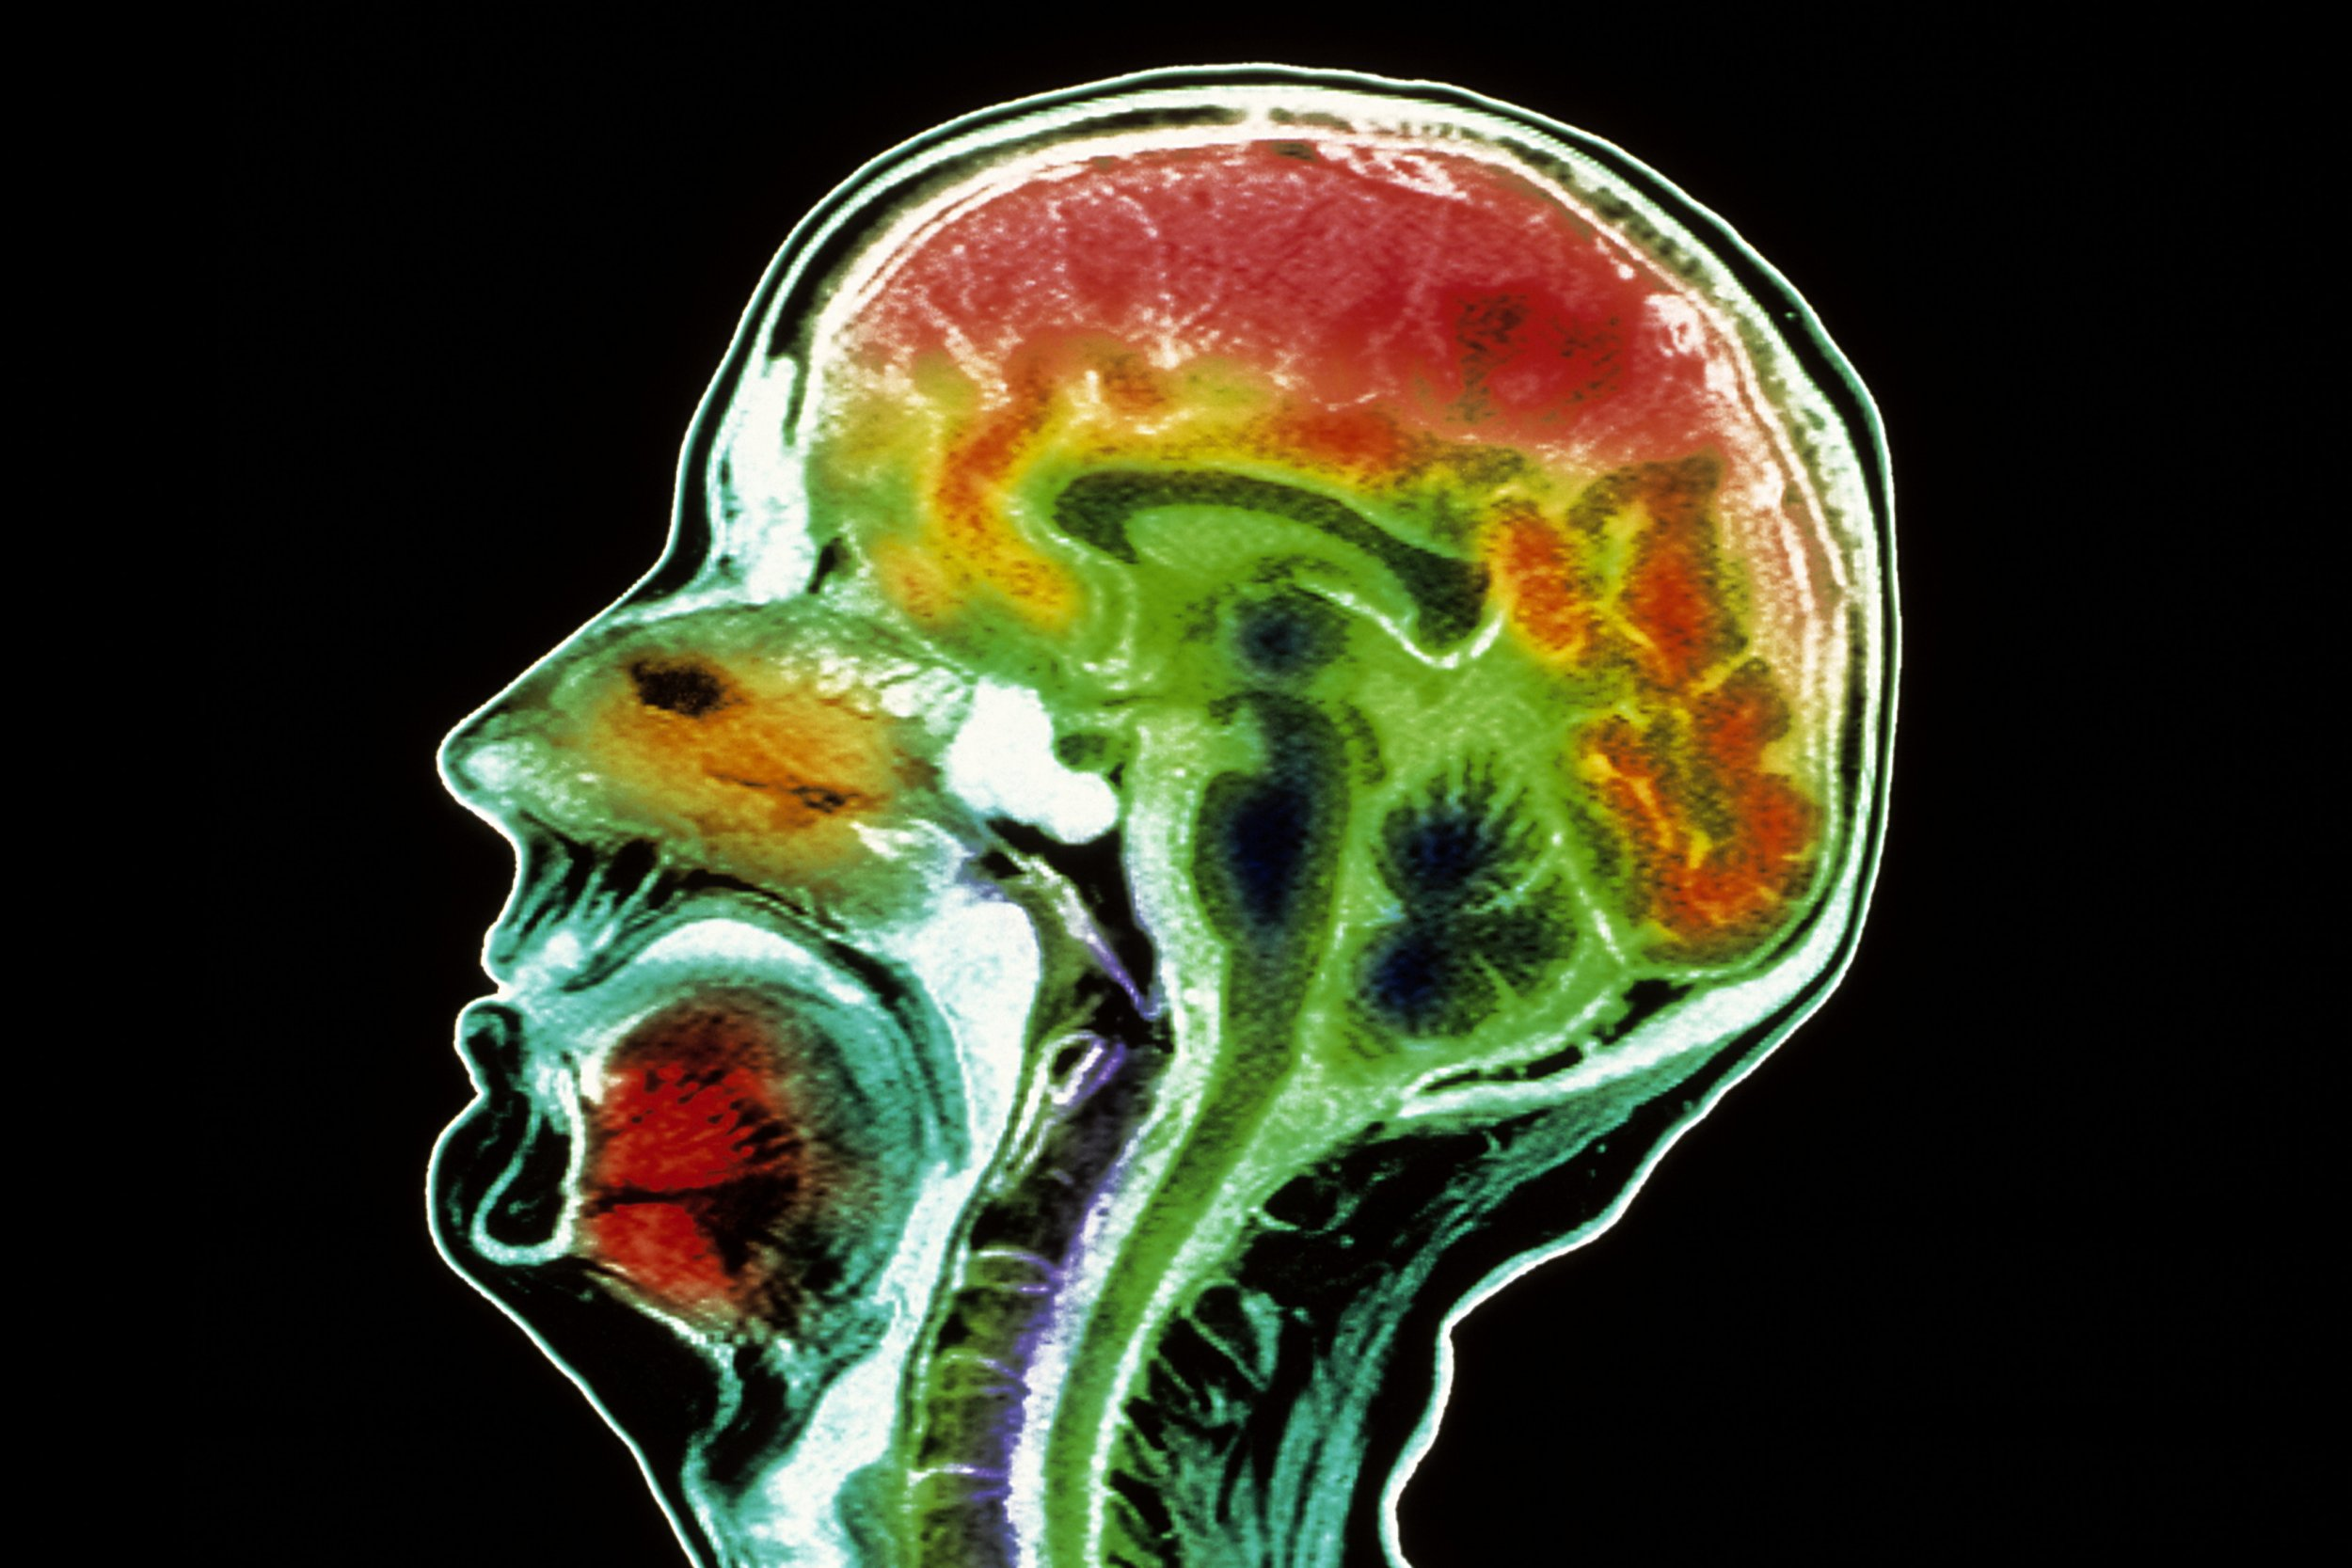 Marketers Exploit The Aged With Unproven Brain-Health Claims